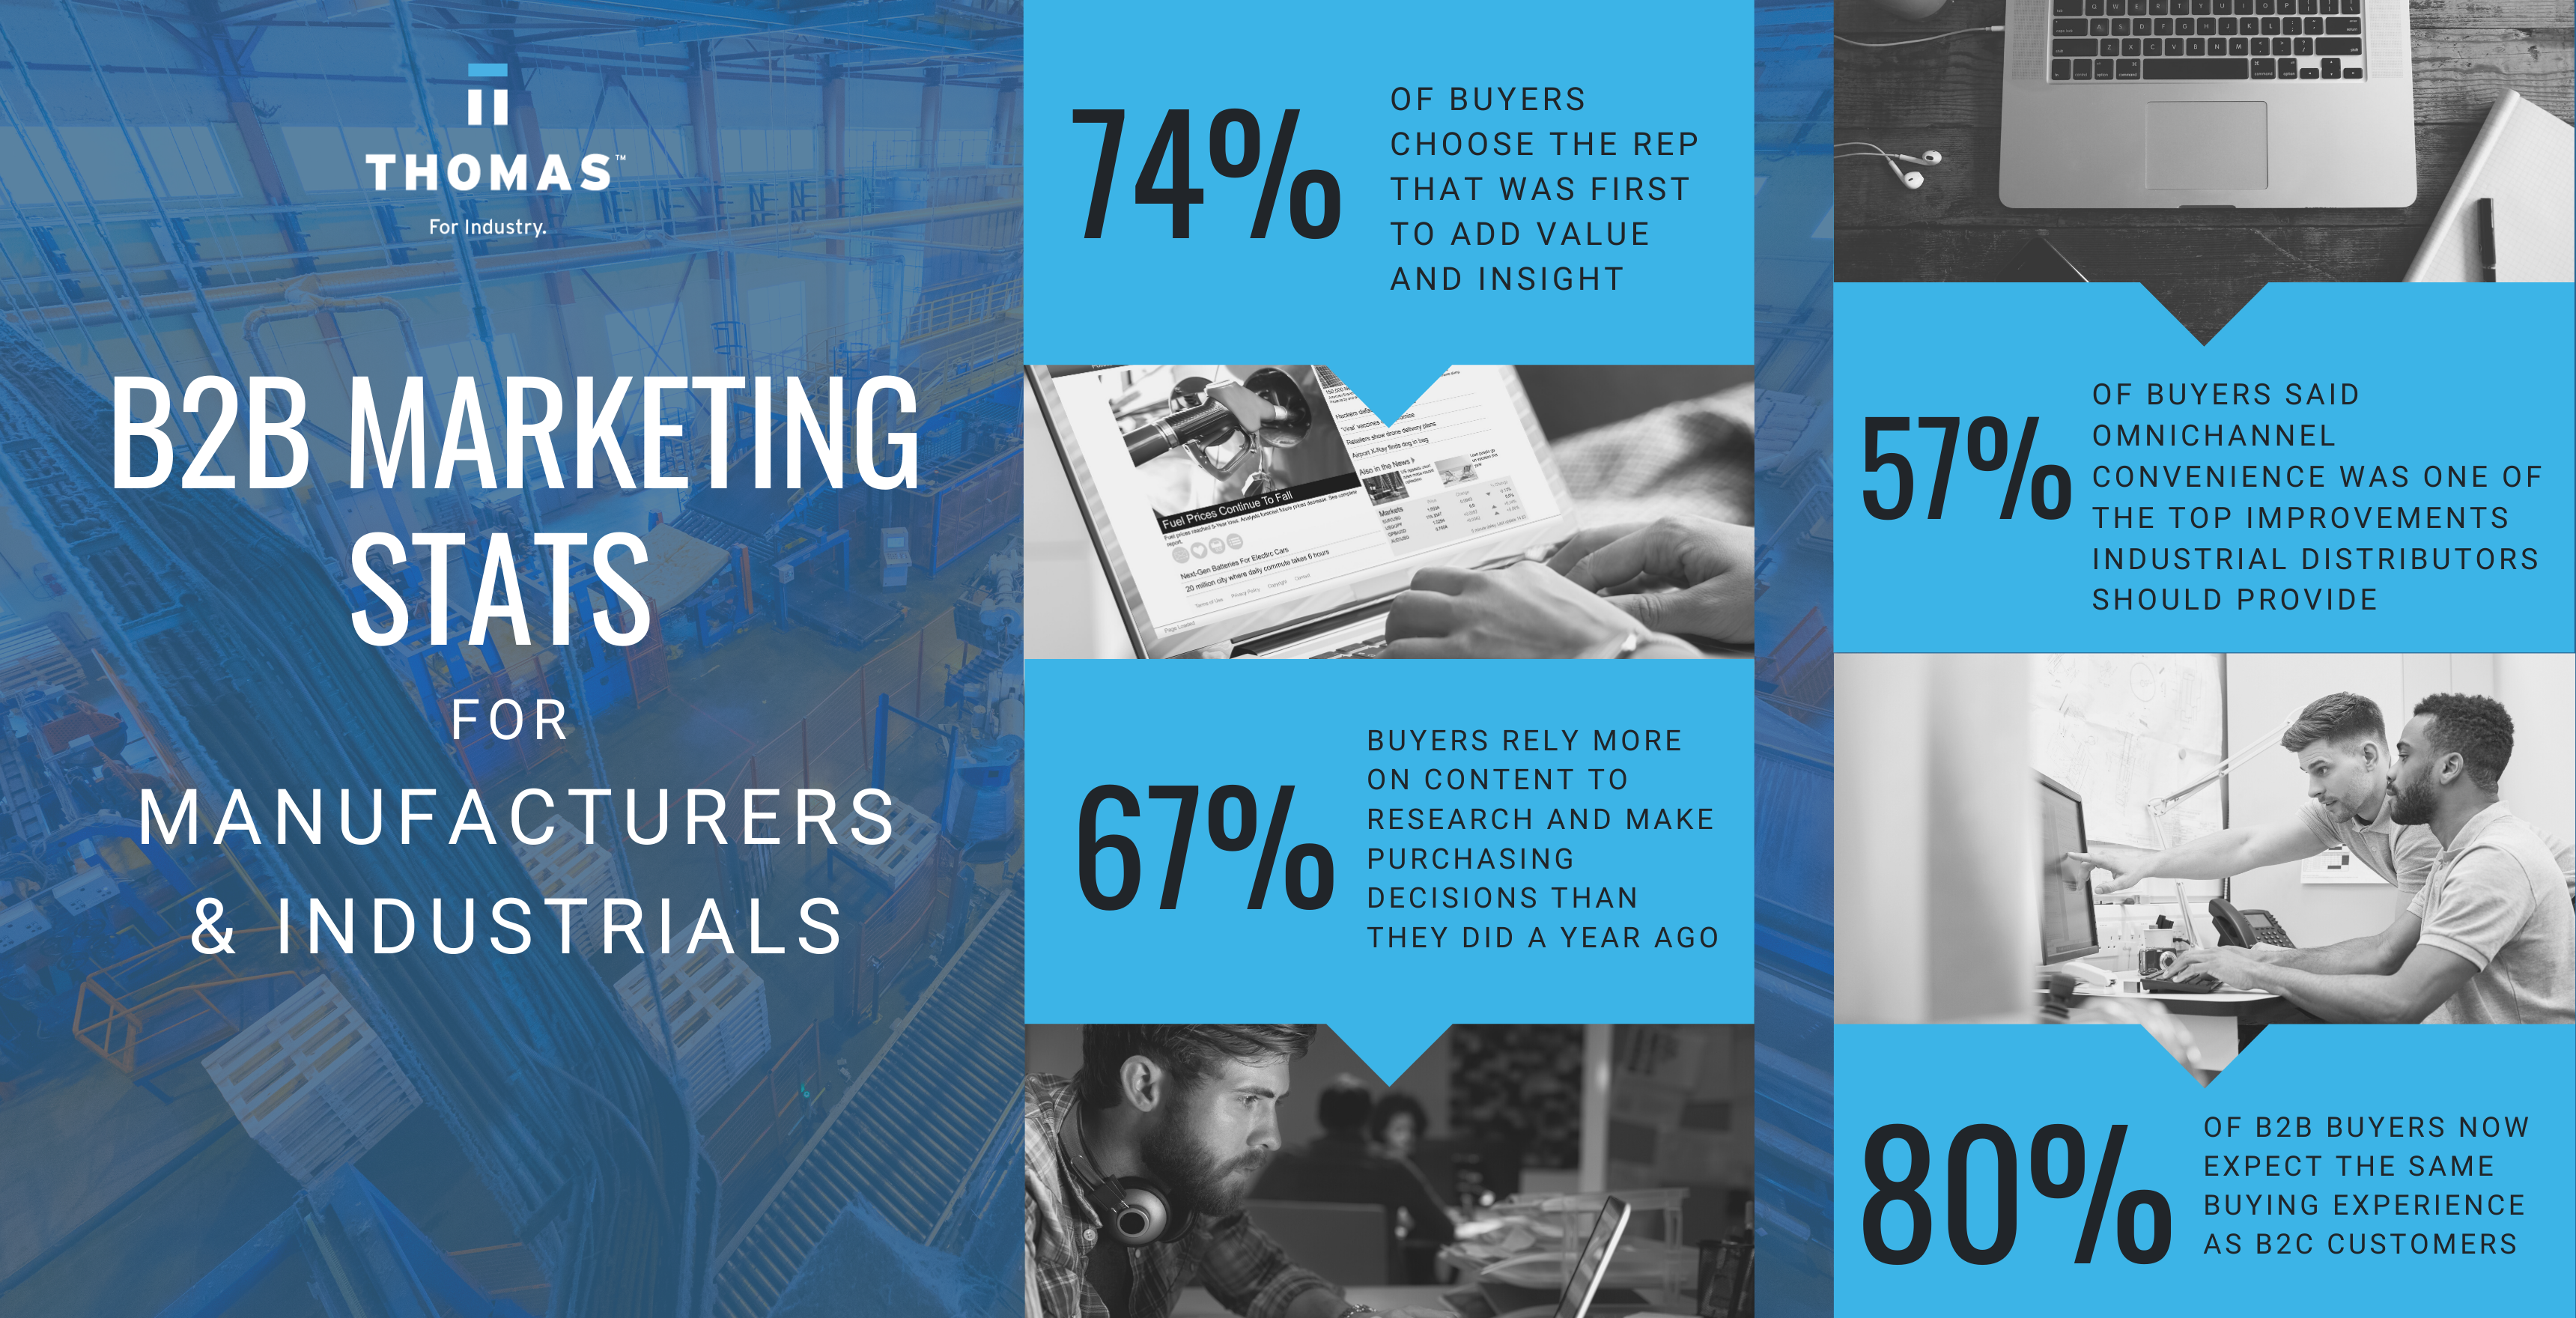 The Ultimate List Of B2B Marketing Statistics For Manufacturers & Industrials